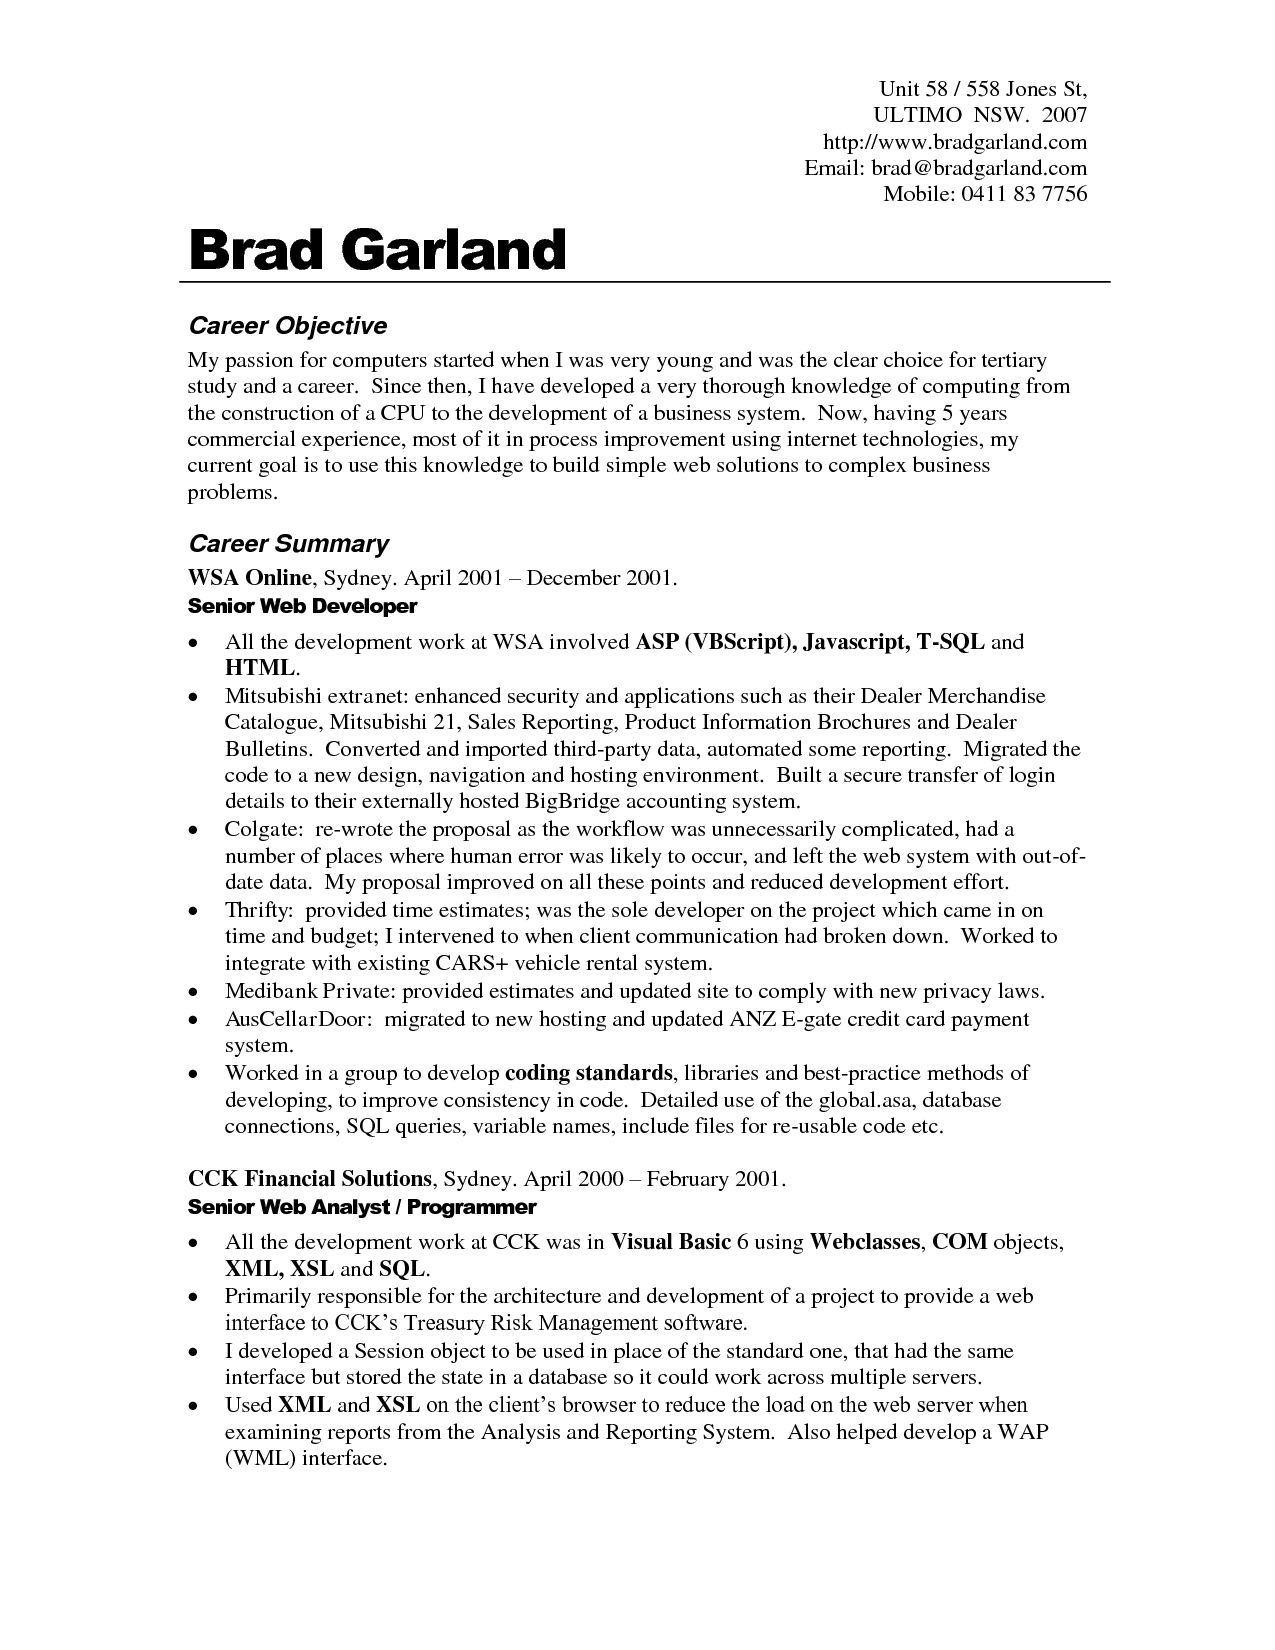 Attorney Resume Template Gorgeous Resume Examples Job Objective  Sample Resume Entry Level And .